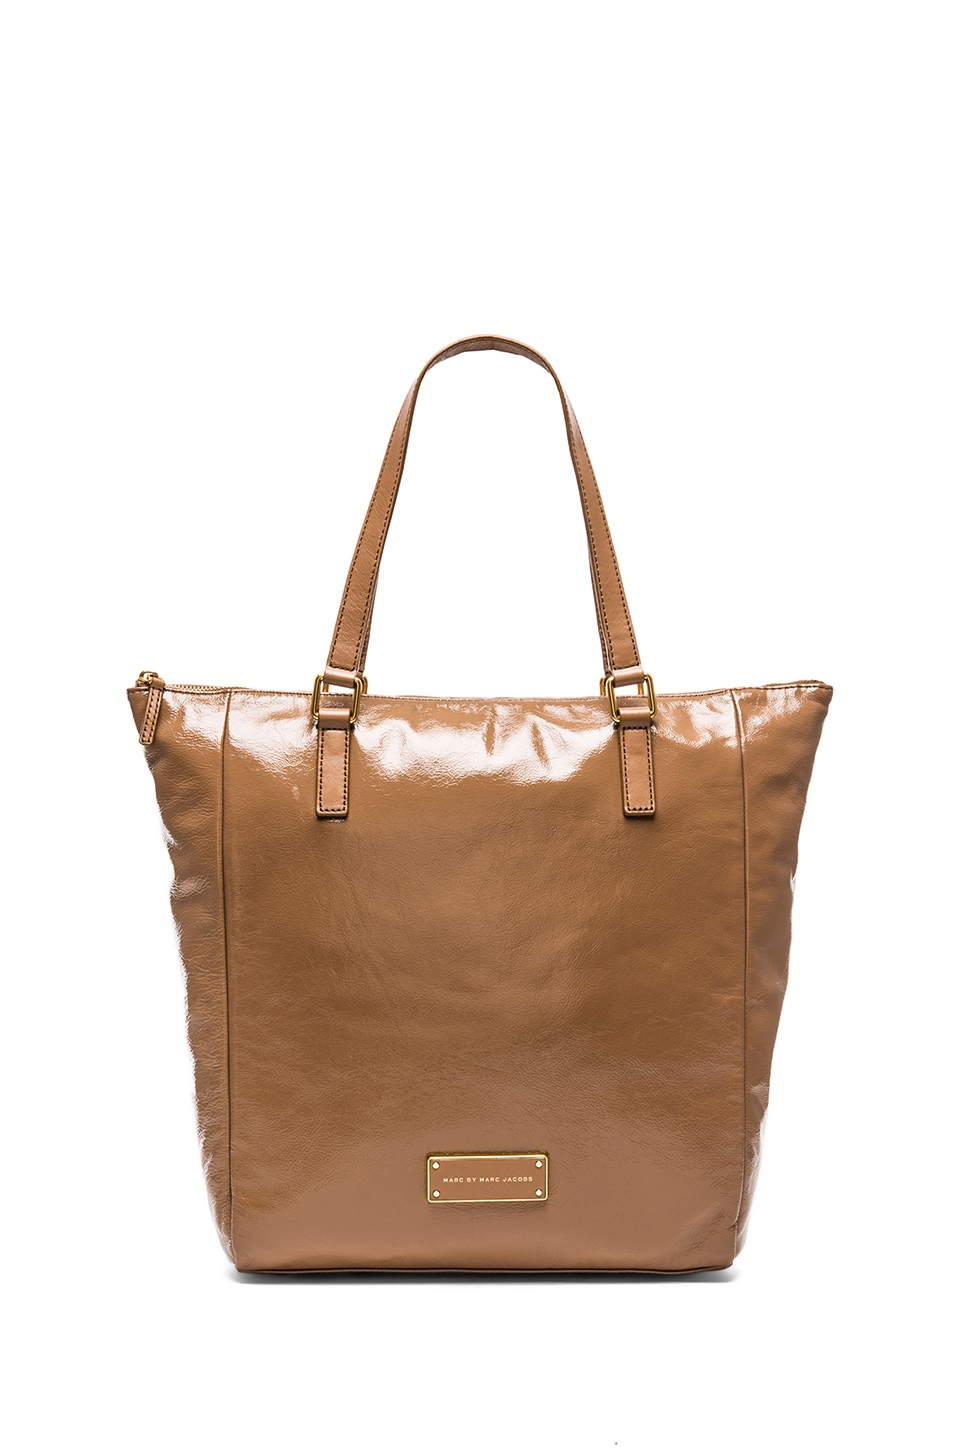 Marc by Marc Jacobs Take Me Shiny Tote in Praline